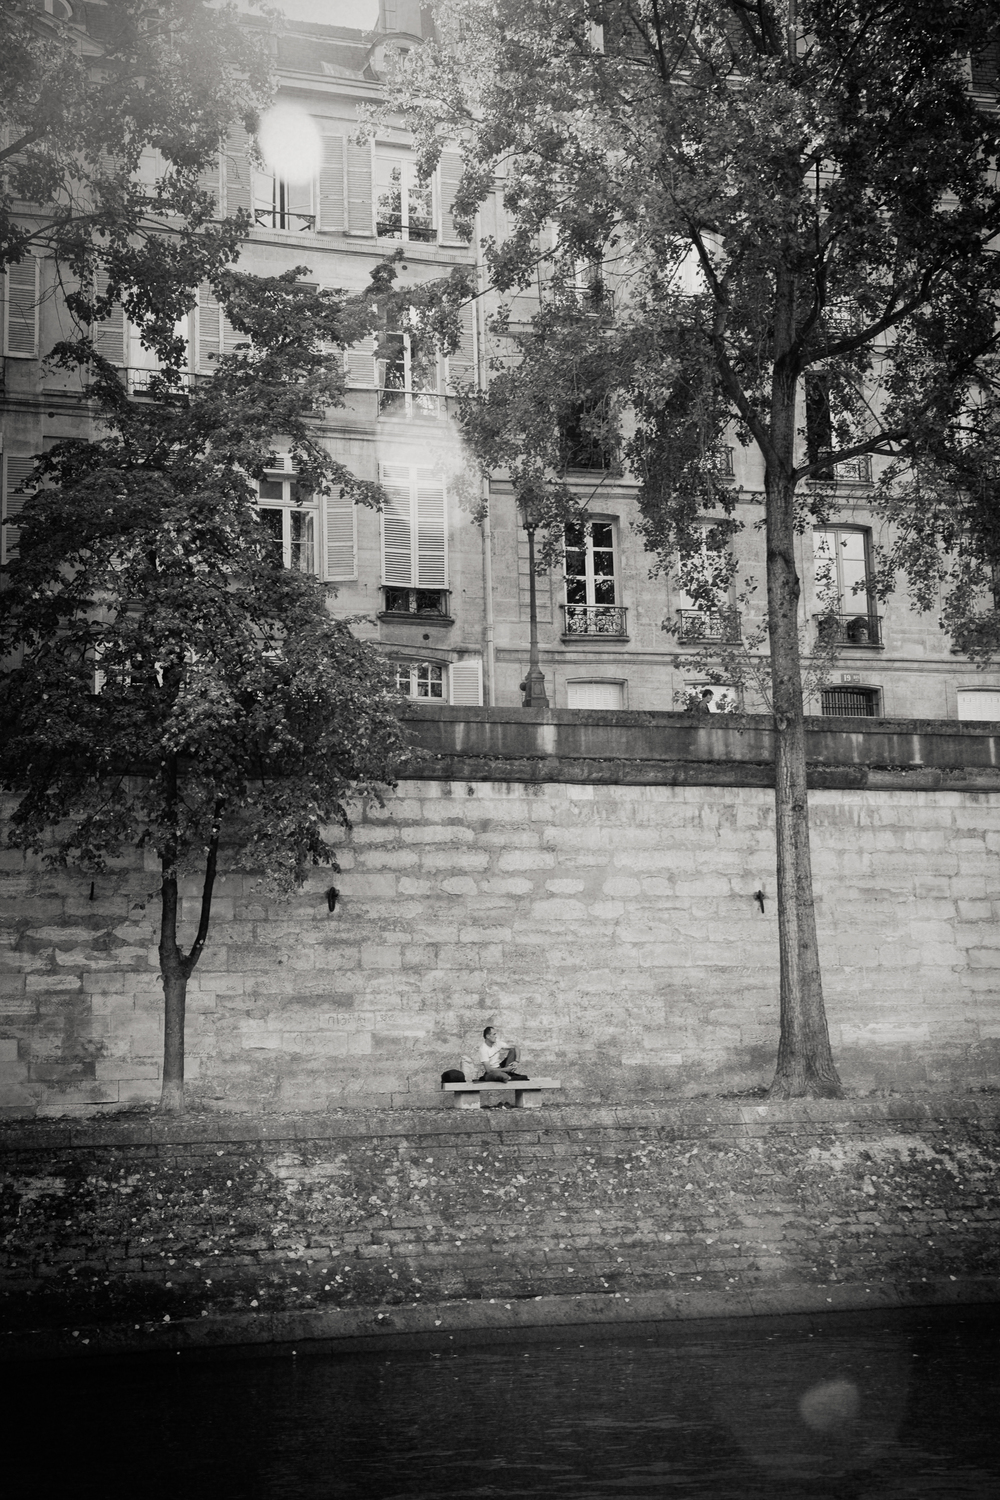 man on bench, River Seine, Paris 2014.